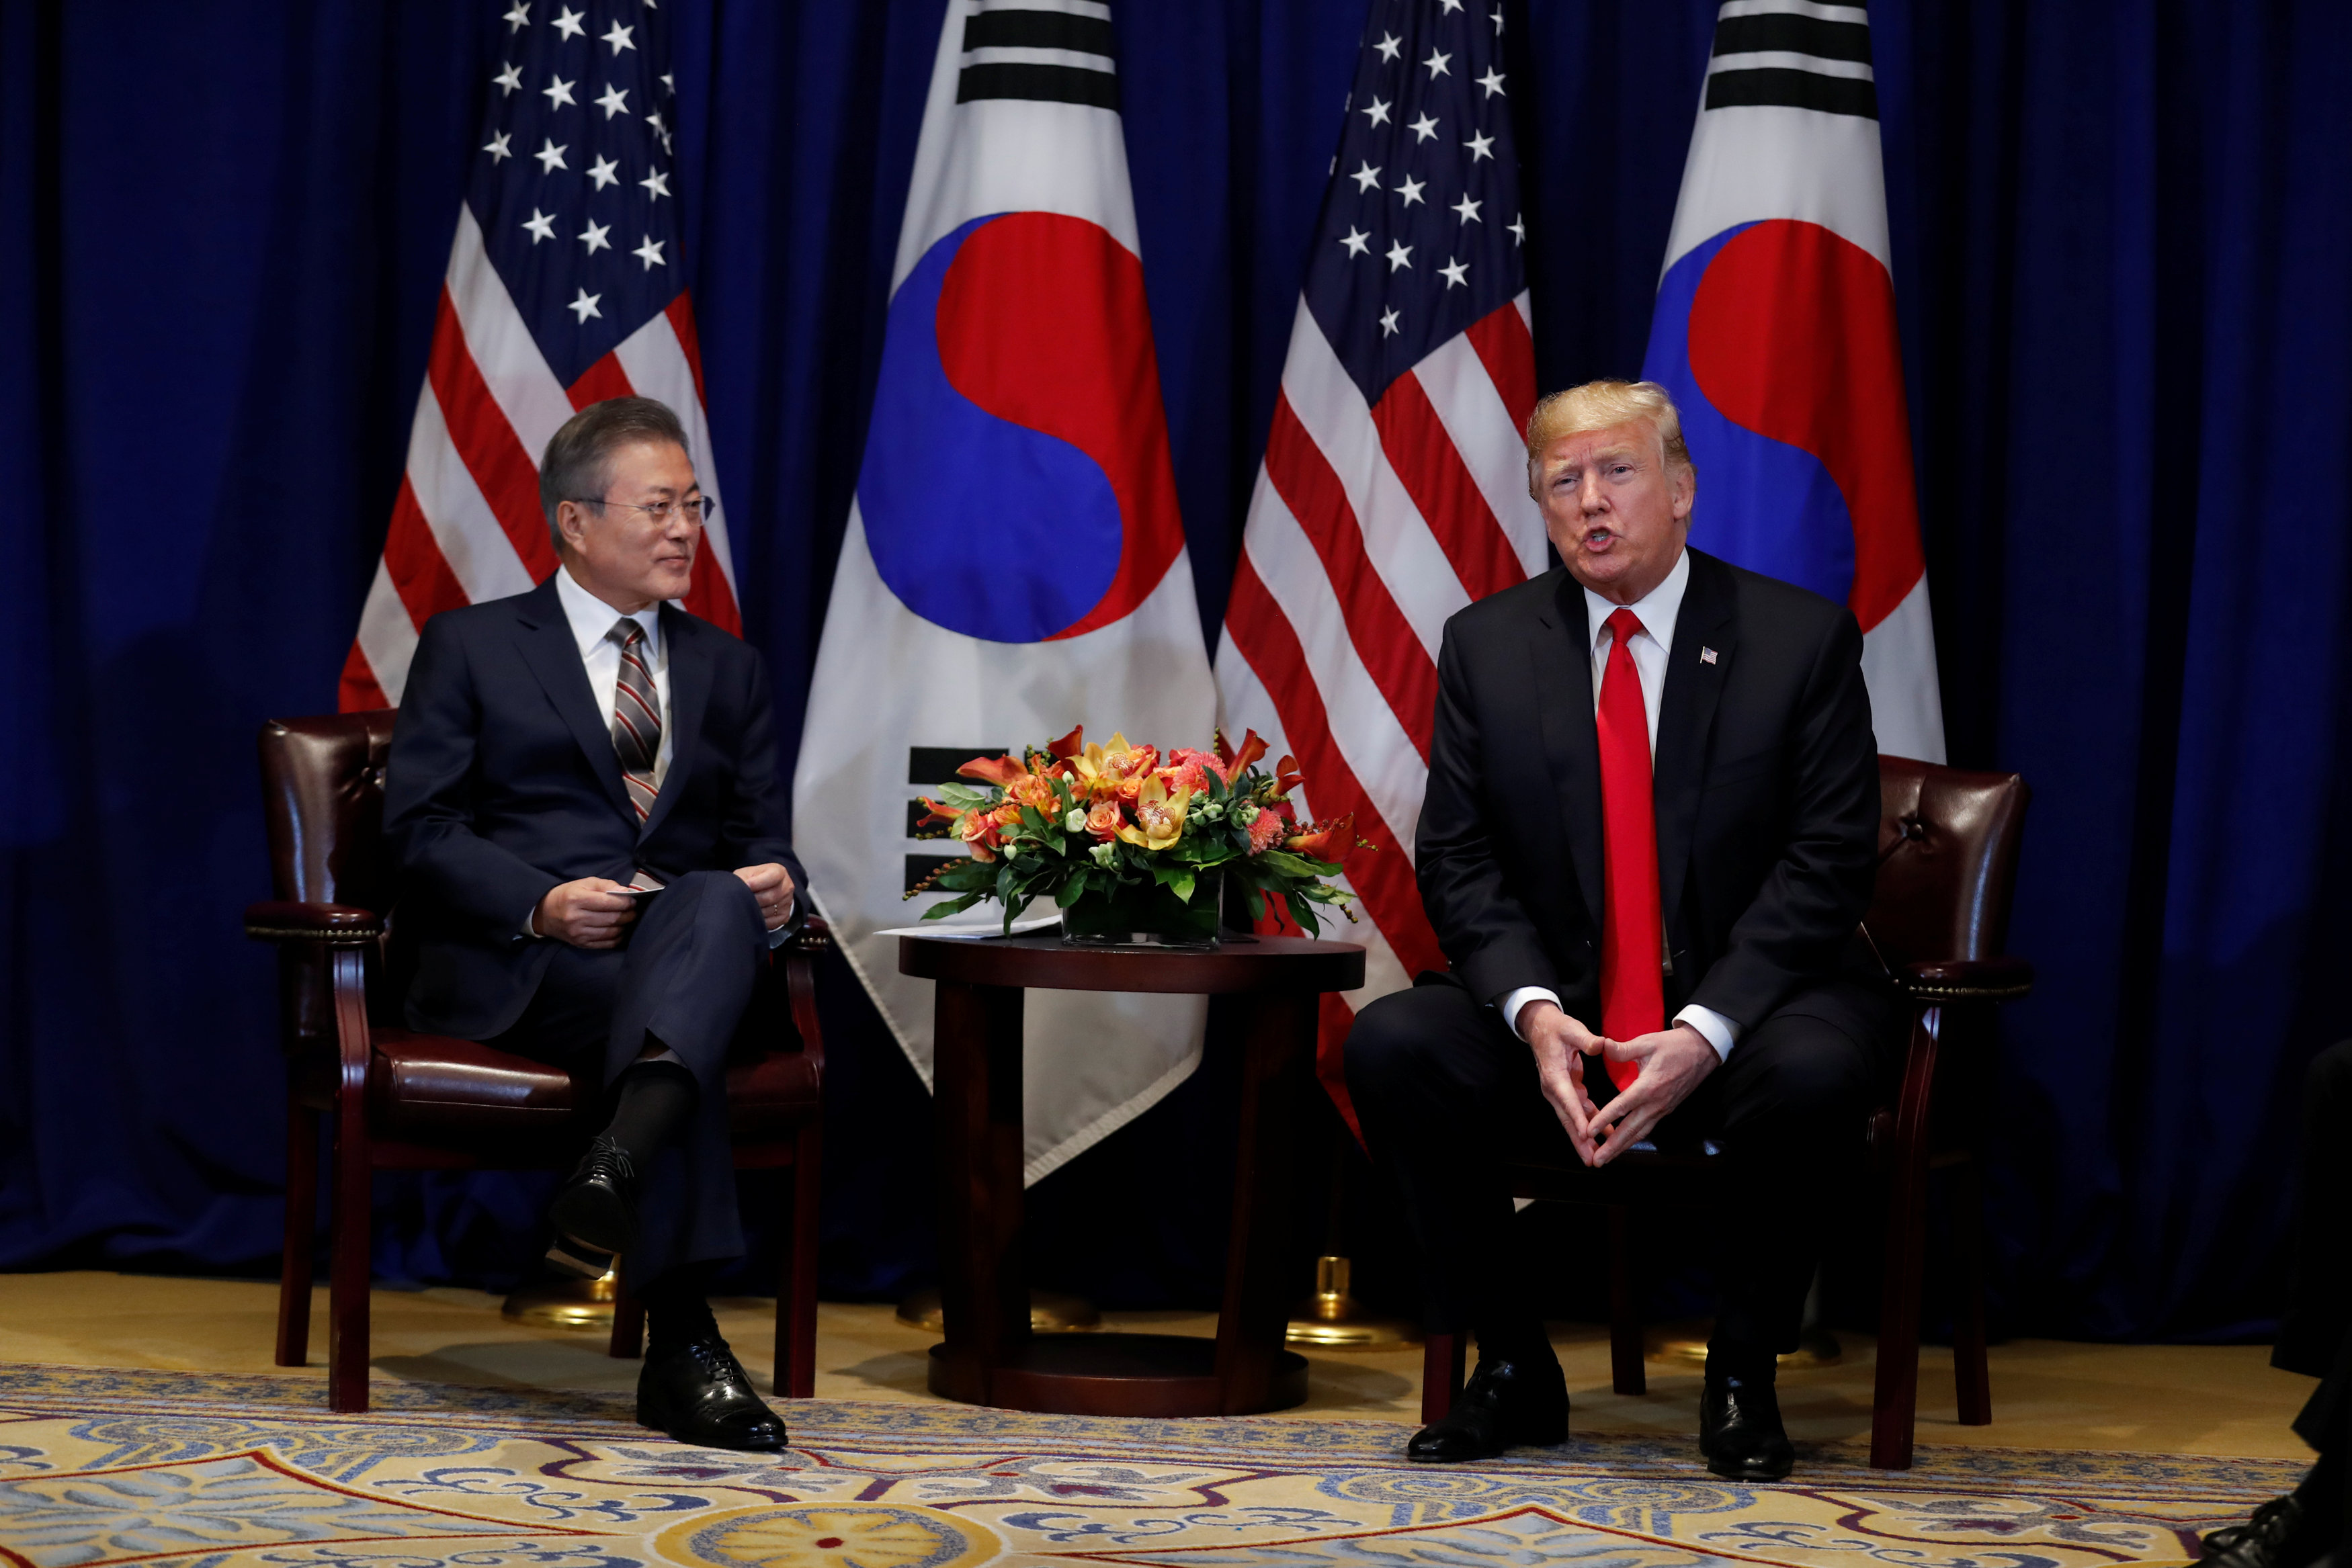 U.S. President Donald Trump holds a bilateral meeting with South Korean President Moon Jae-in on the sidelines of the 73rd United Nations General Assembly in New York, U.S., September 24, 2018. REUTERS/Carlos Barria